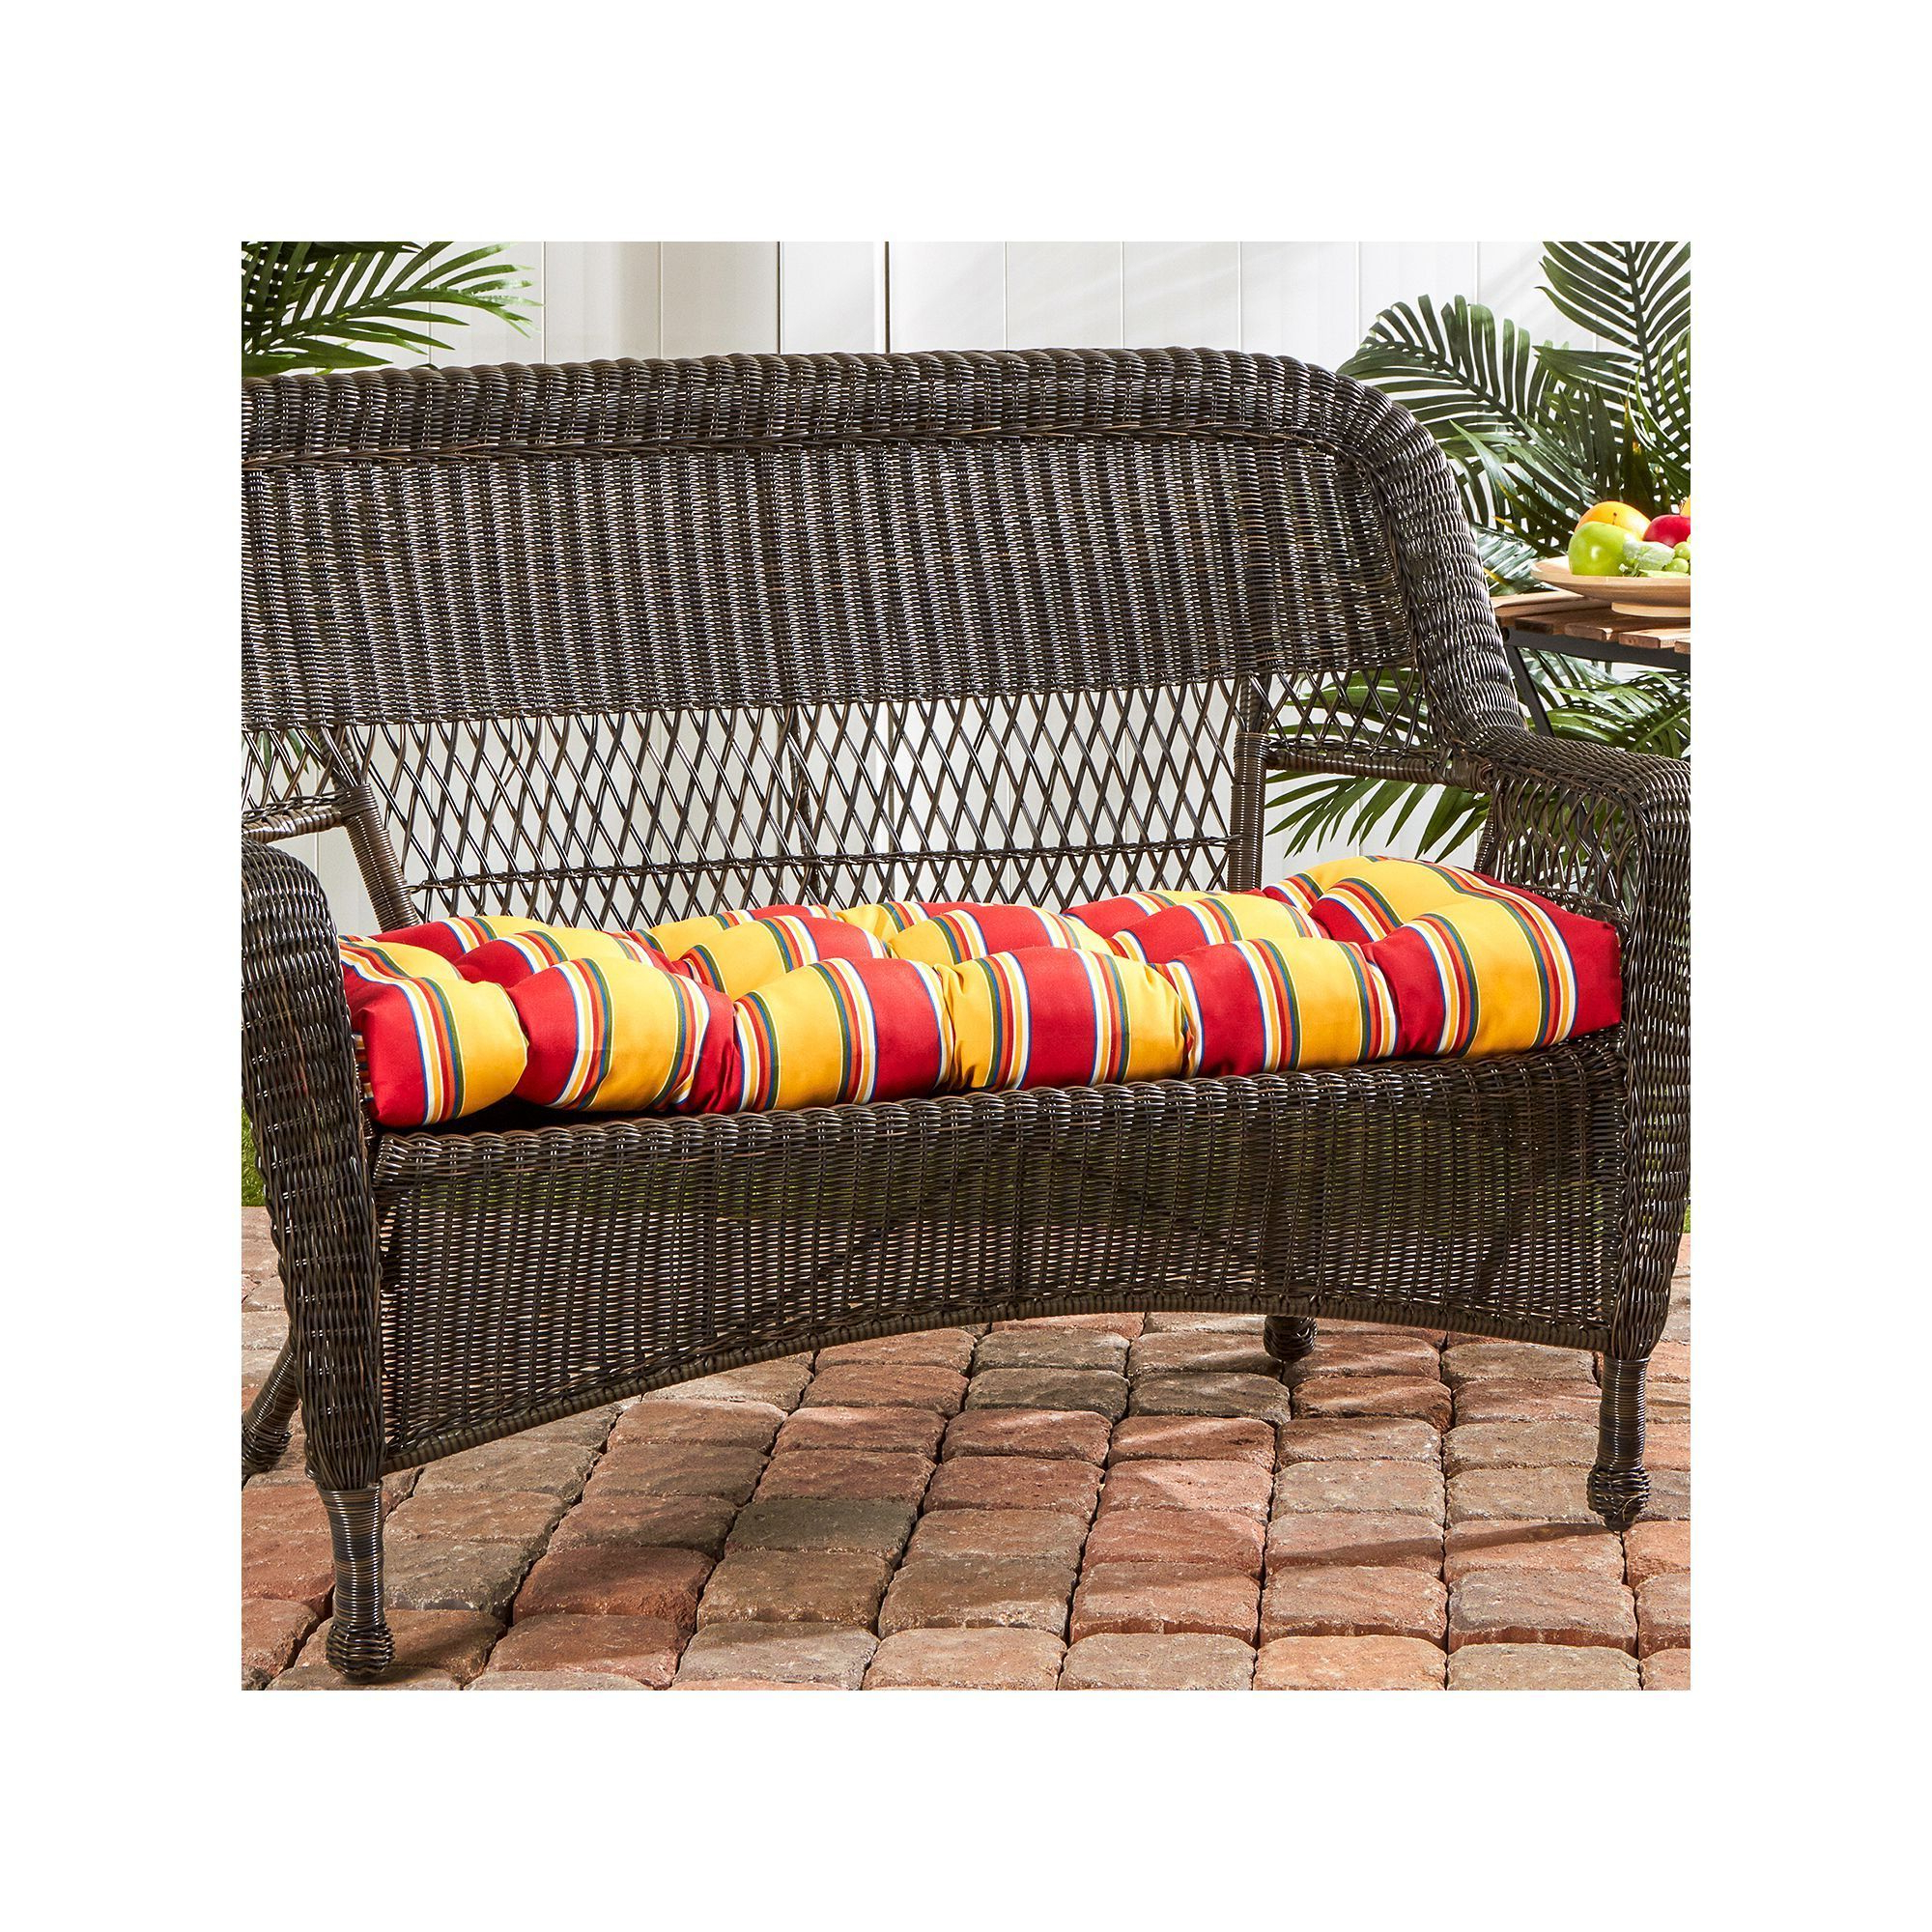 Greendale Home Fashions Outdoor Porch Swing Or Bench Cushion Inside Recent Karan Wicker Patio Loveseats (View 4 of 20)